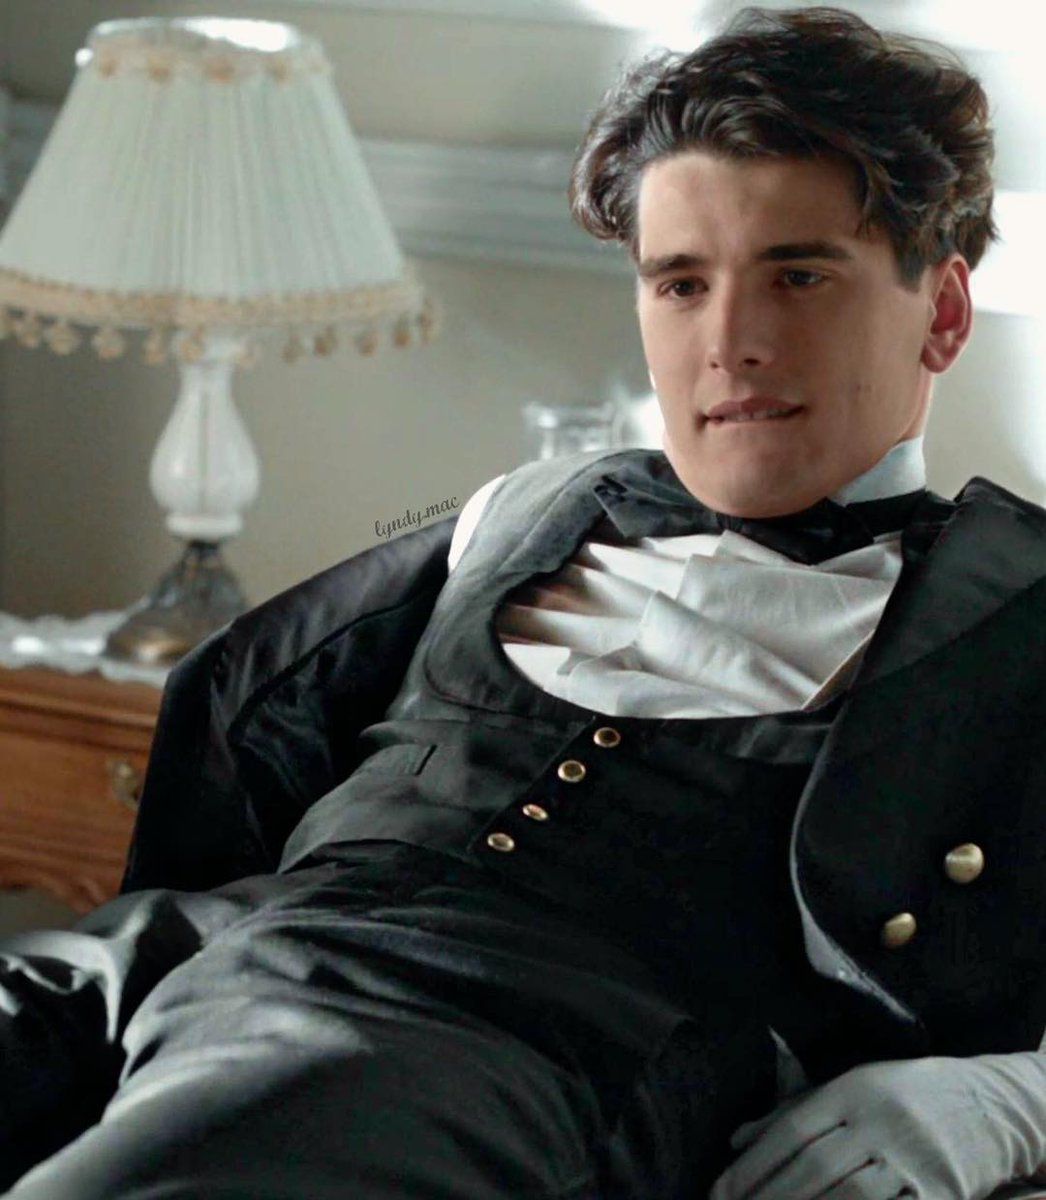 Yon Gonzalez World Fans On Twitter Granhotel Julio As He Watches Alicia Walk Out Leaving Him Alone On The Bed For Real What Is Wrong With That Girl Yongonzalez Grand Hotel And Las